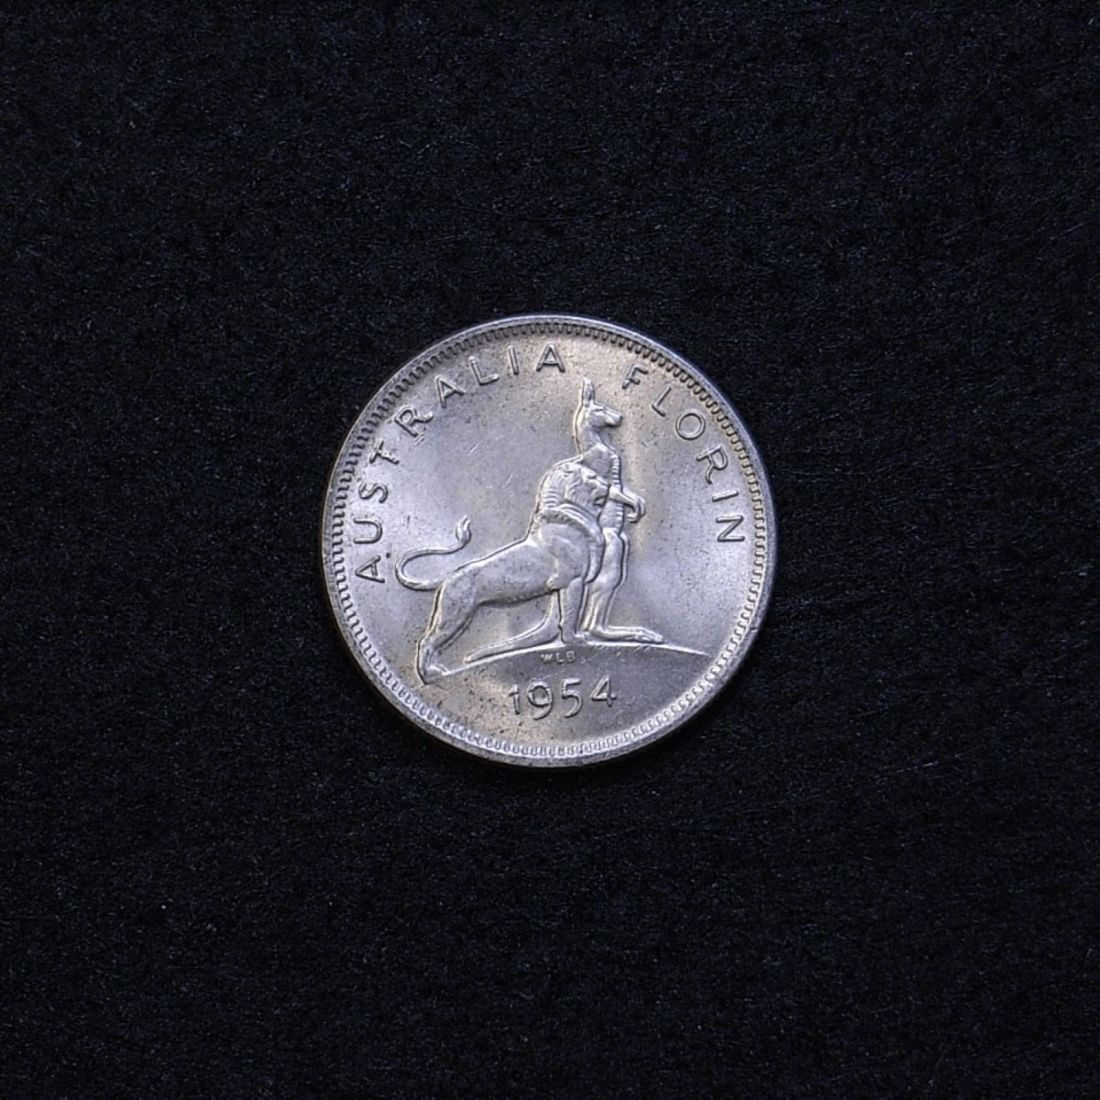 Aus Florin 1954 reverse showing overall appearance